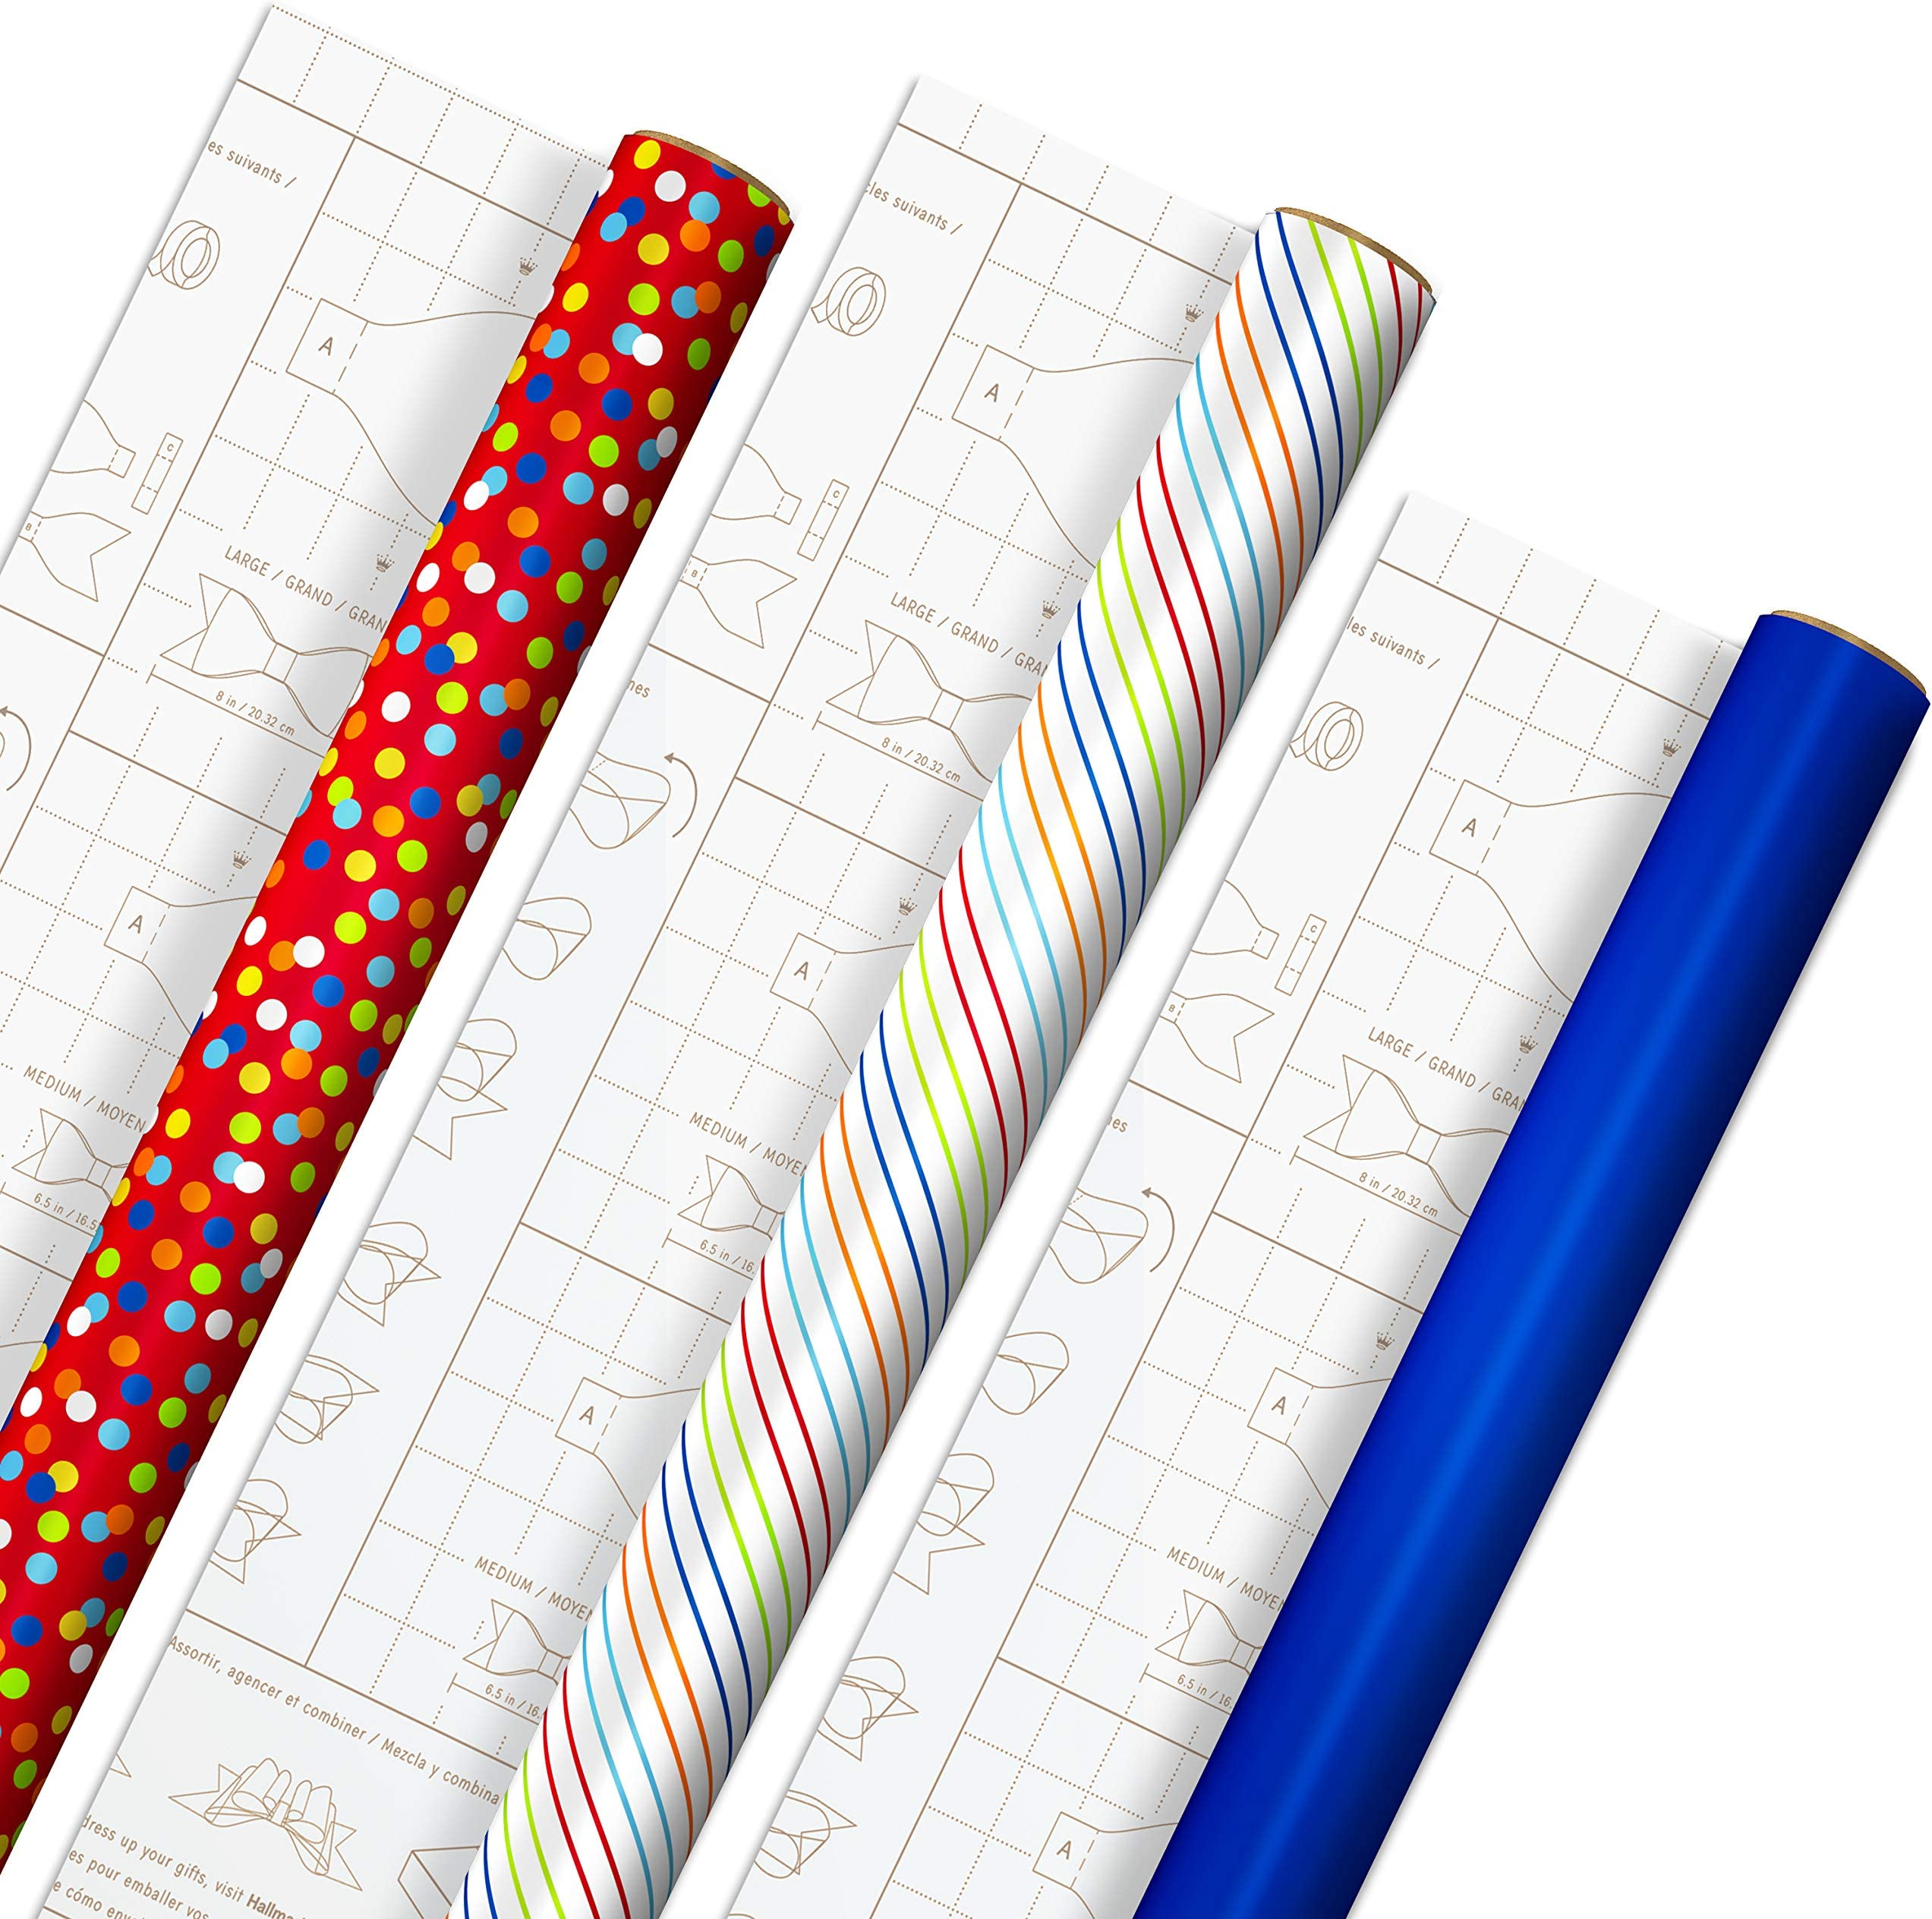 Hallmark Birthday Wrapping Paper with Templates for Handmade Bows on Reverse (3-Pack: 75 sq. ft. ttl) Royal Blue, Rainbow Stripes, Colorful Confetti